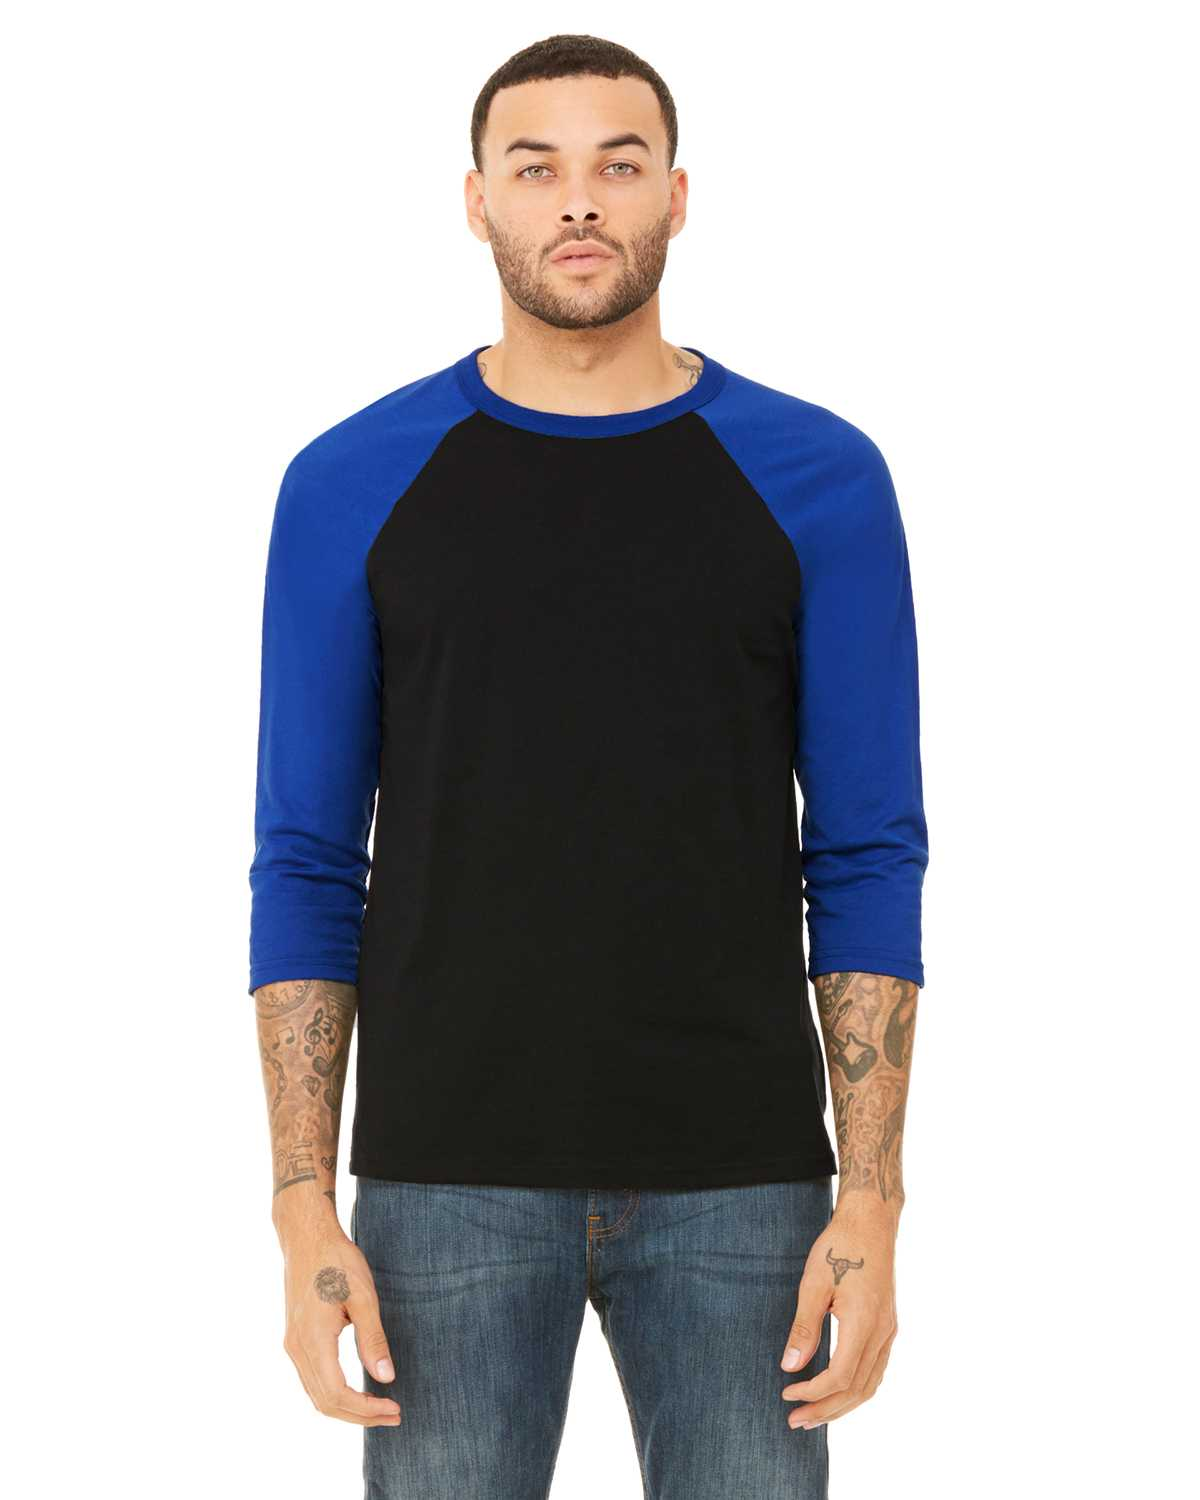 7958619ab4d2a Men Bella + Canvas 3200 Unisex 3 4-Sleeve Baseball T-Shirt. 3200 CE z View  larger. Previous. 3200 CE z ...